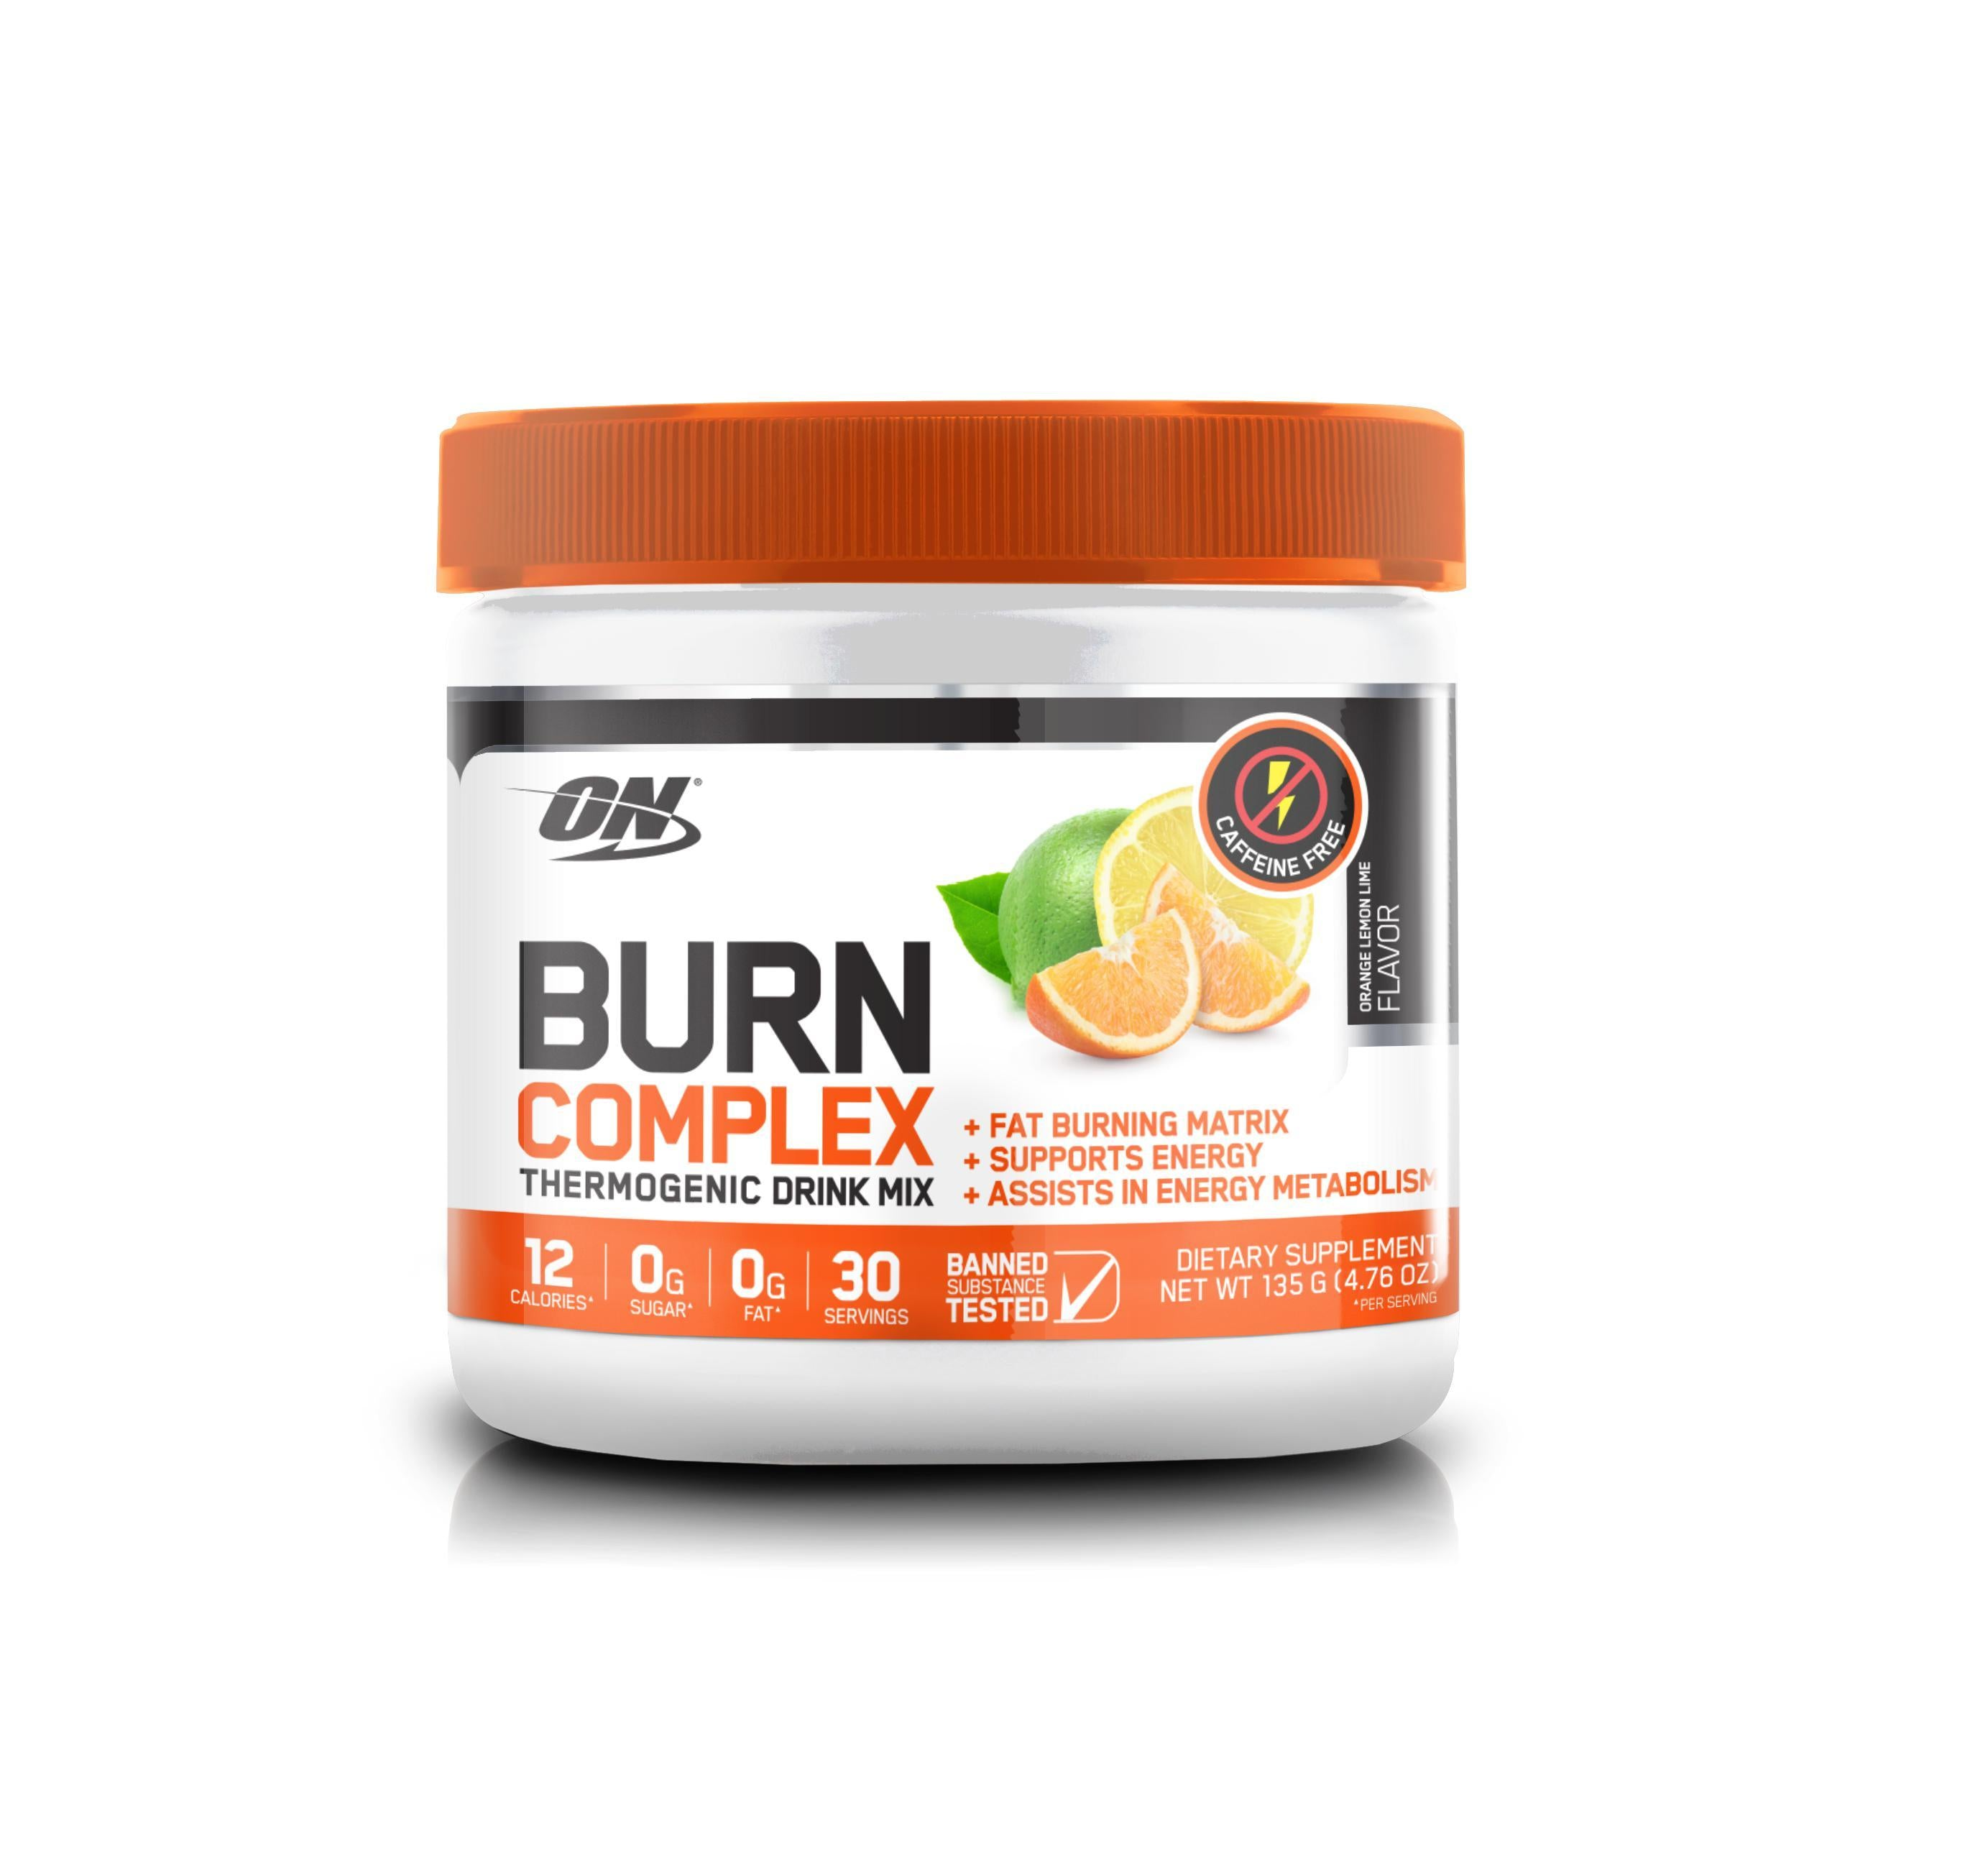 ON Burn Complex STIM FREE-Weight Loss - Fat Burners-Optimum Nutrition-30 Serves-LEMON LIME-Thrive Health and Nutrition